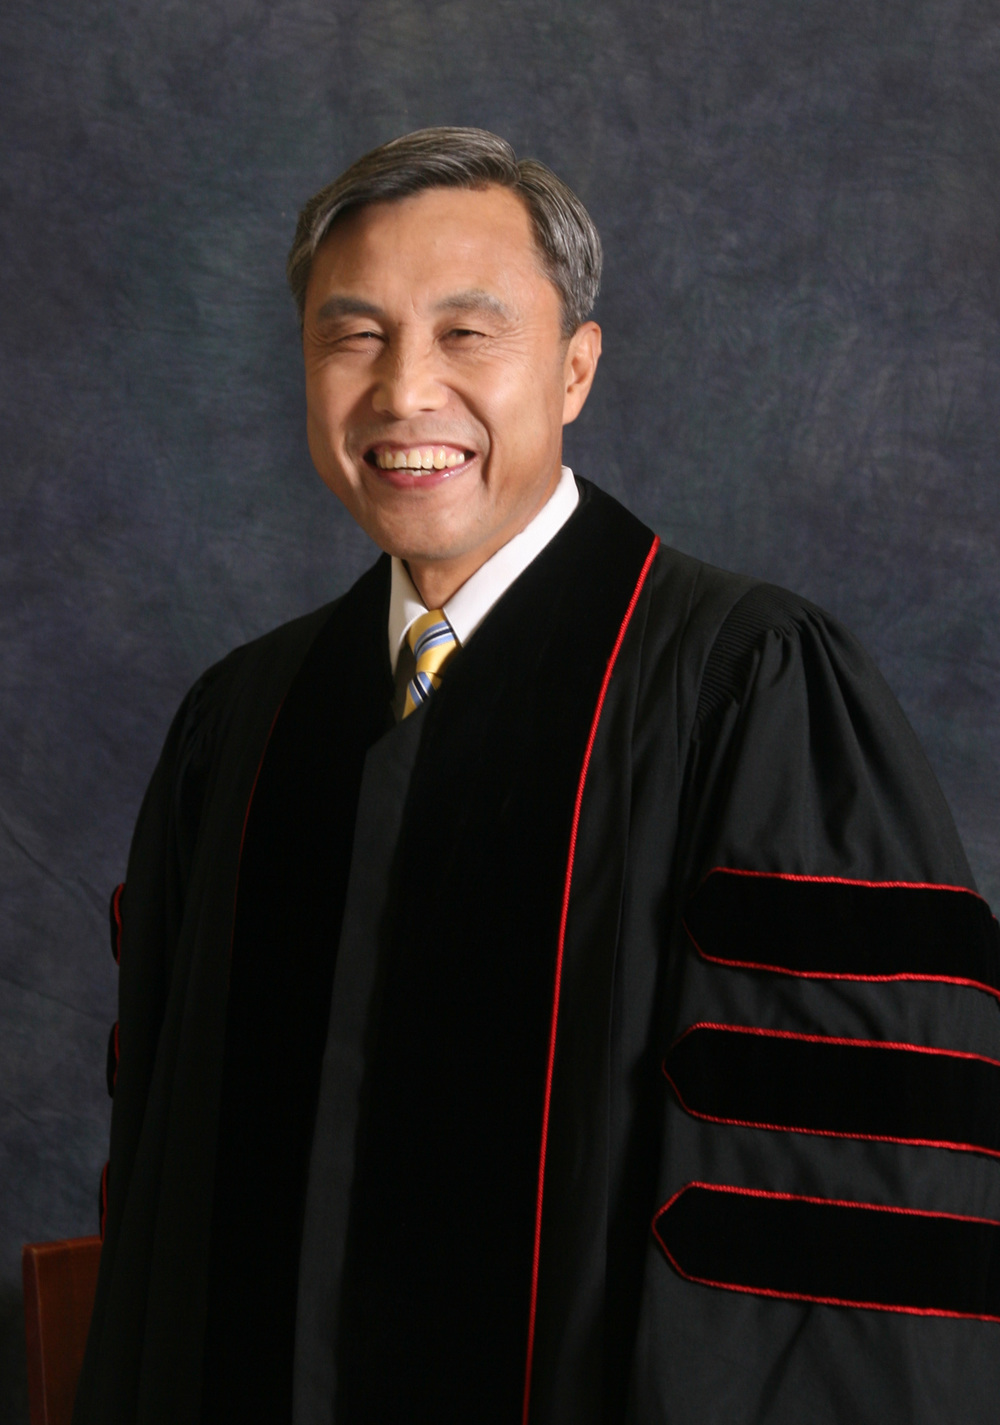 The Rev. Dr. Paul Min